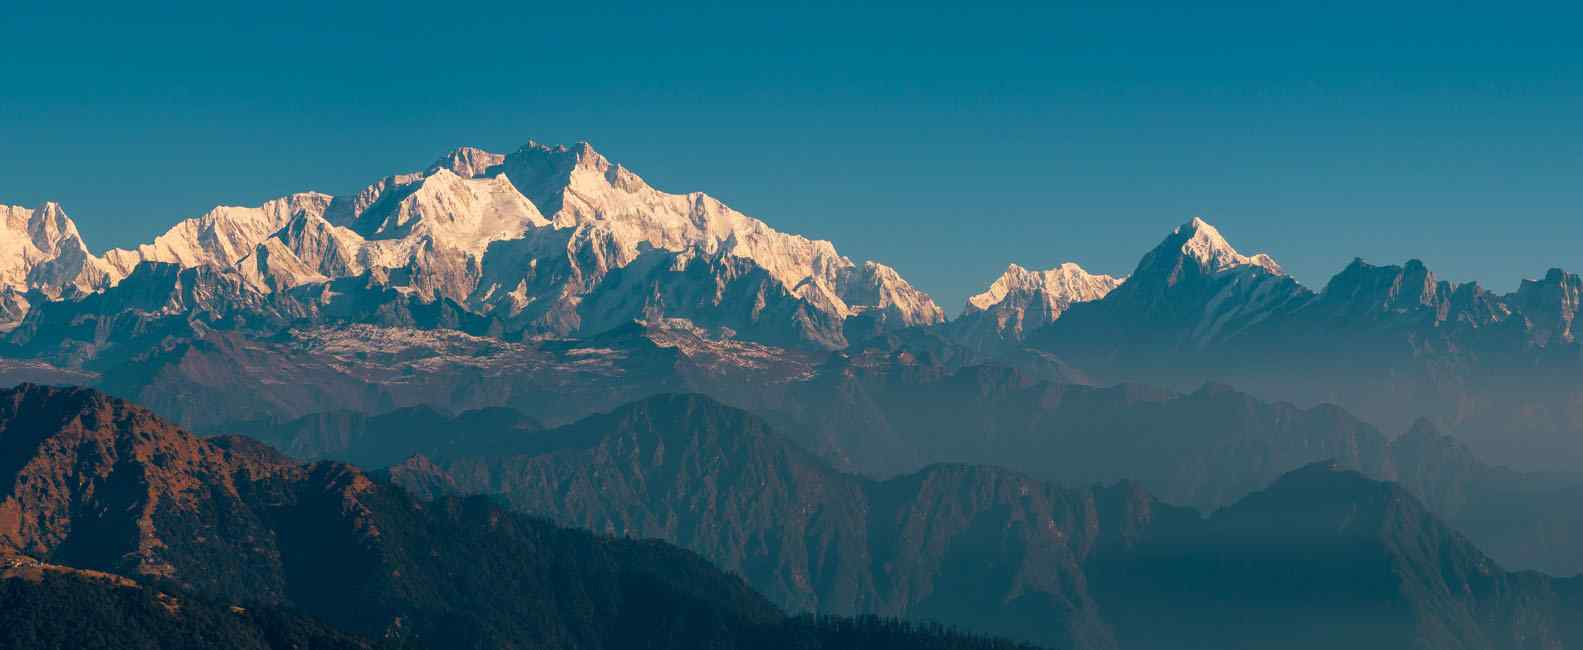 Kanchenjunga Base Camp Trekking in Nepal